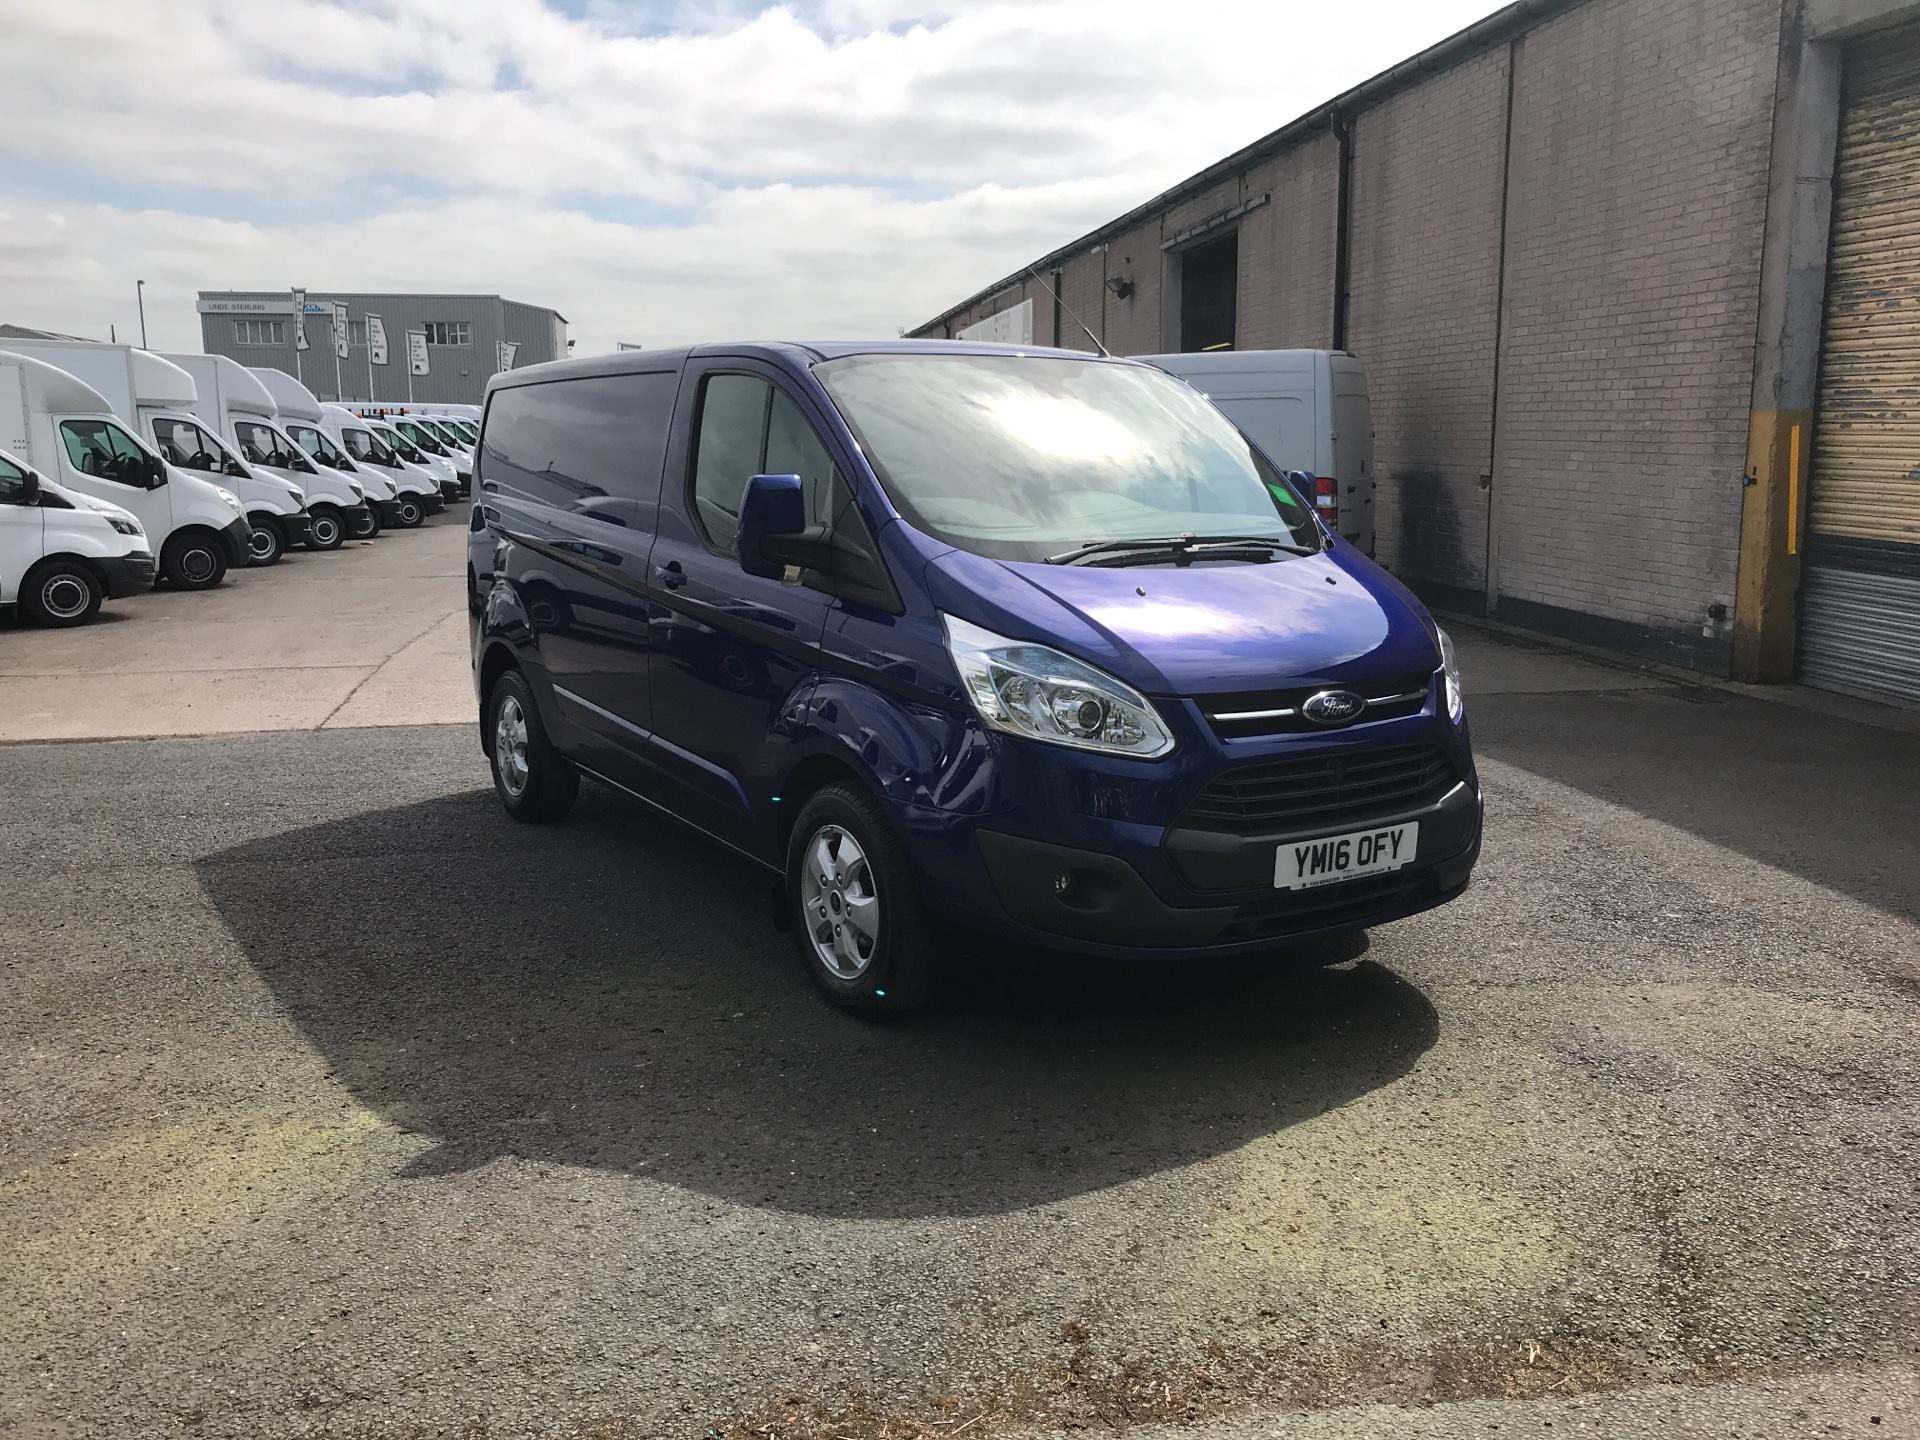 2016 Ford Transit Custom 270 L1 DIESEL 2.2TDCI 125PS LIMITED EURO 5 (YM16OFY)